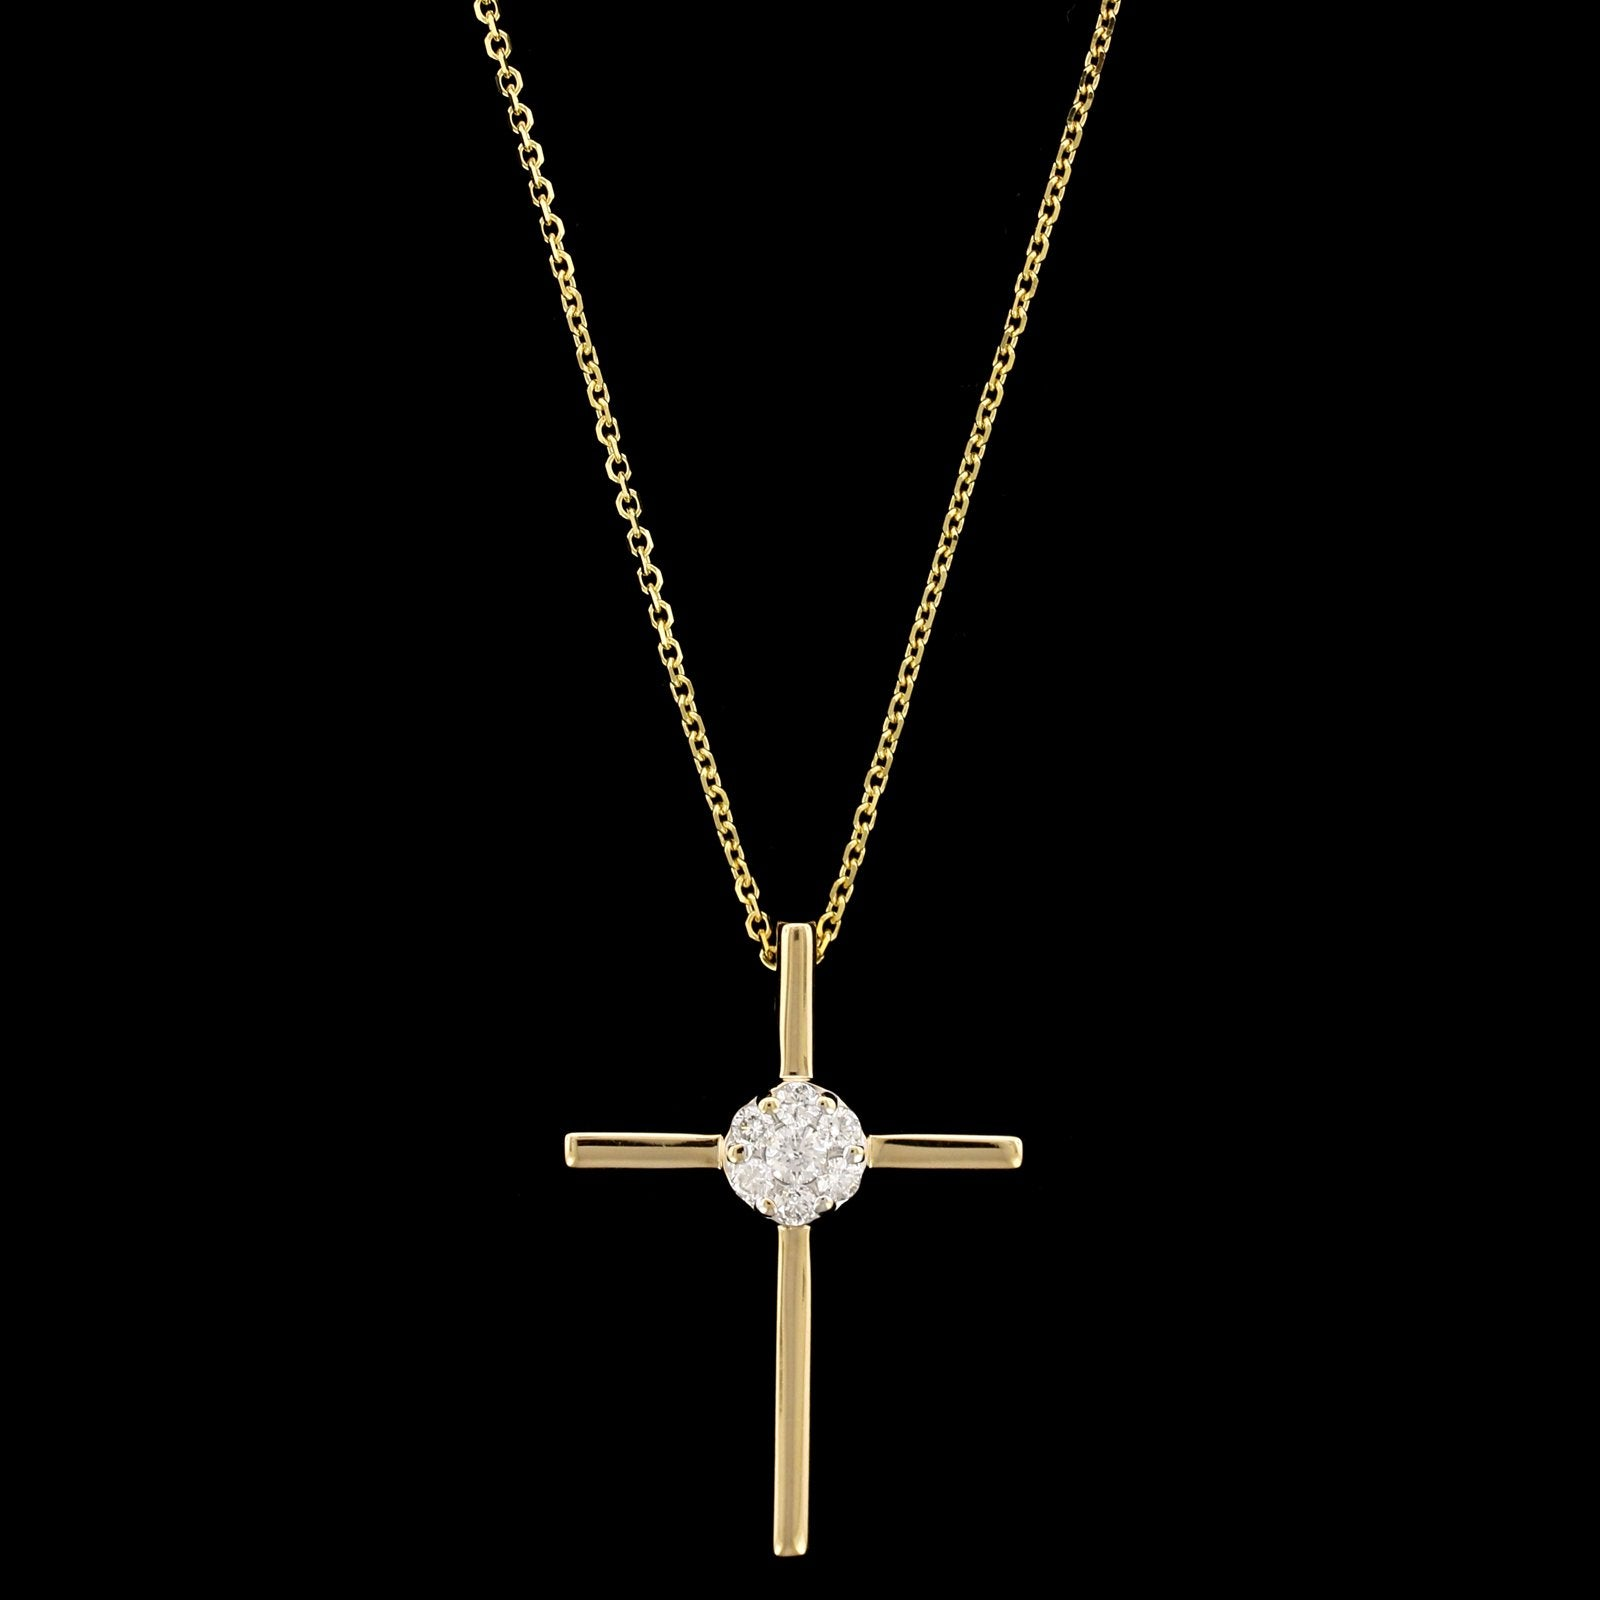 14K Yellow Gold Estate Diamond Cross Pendant